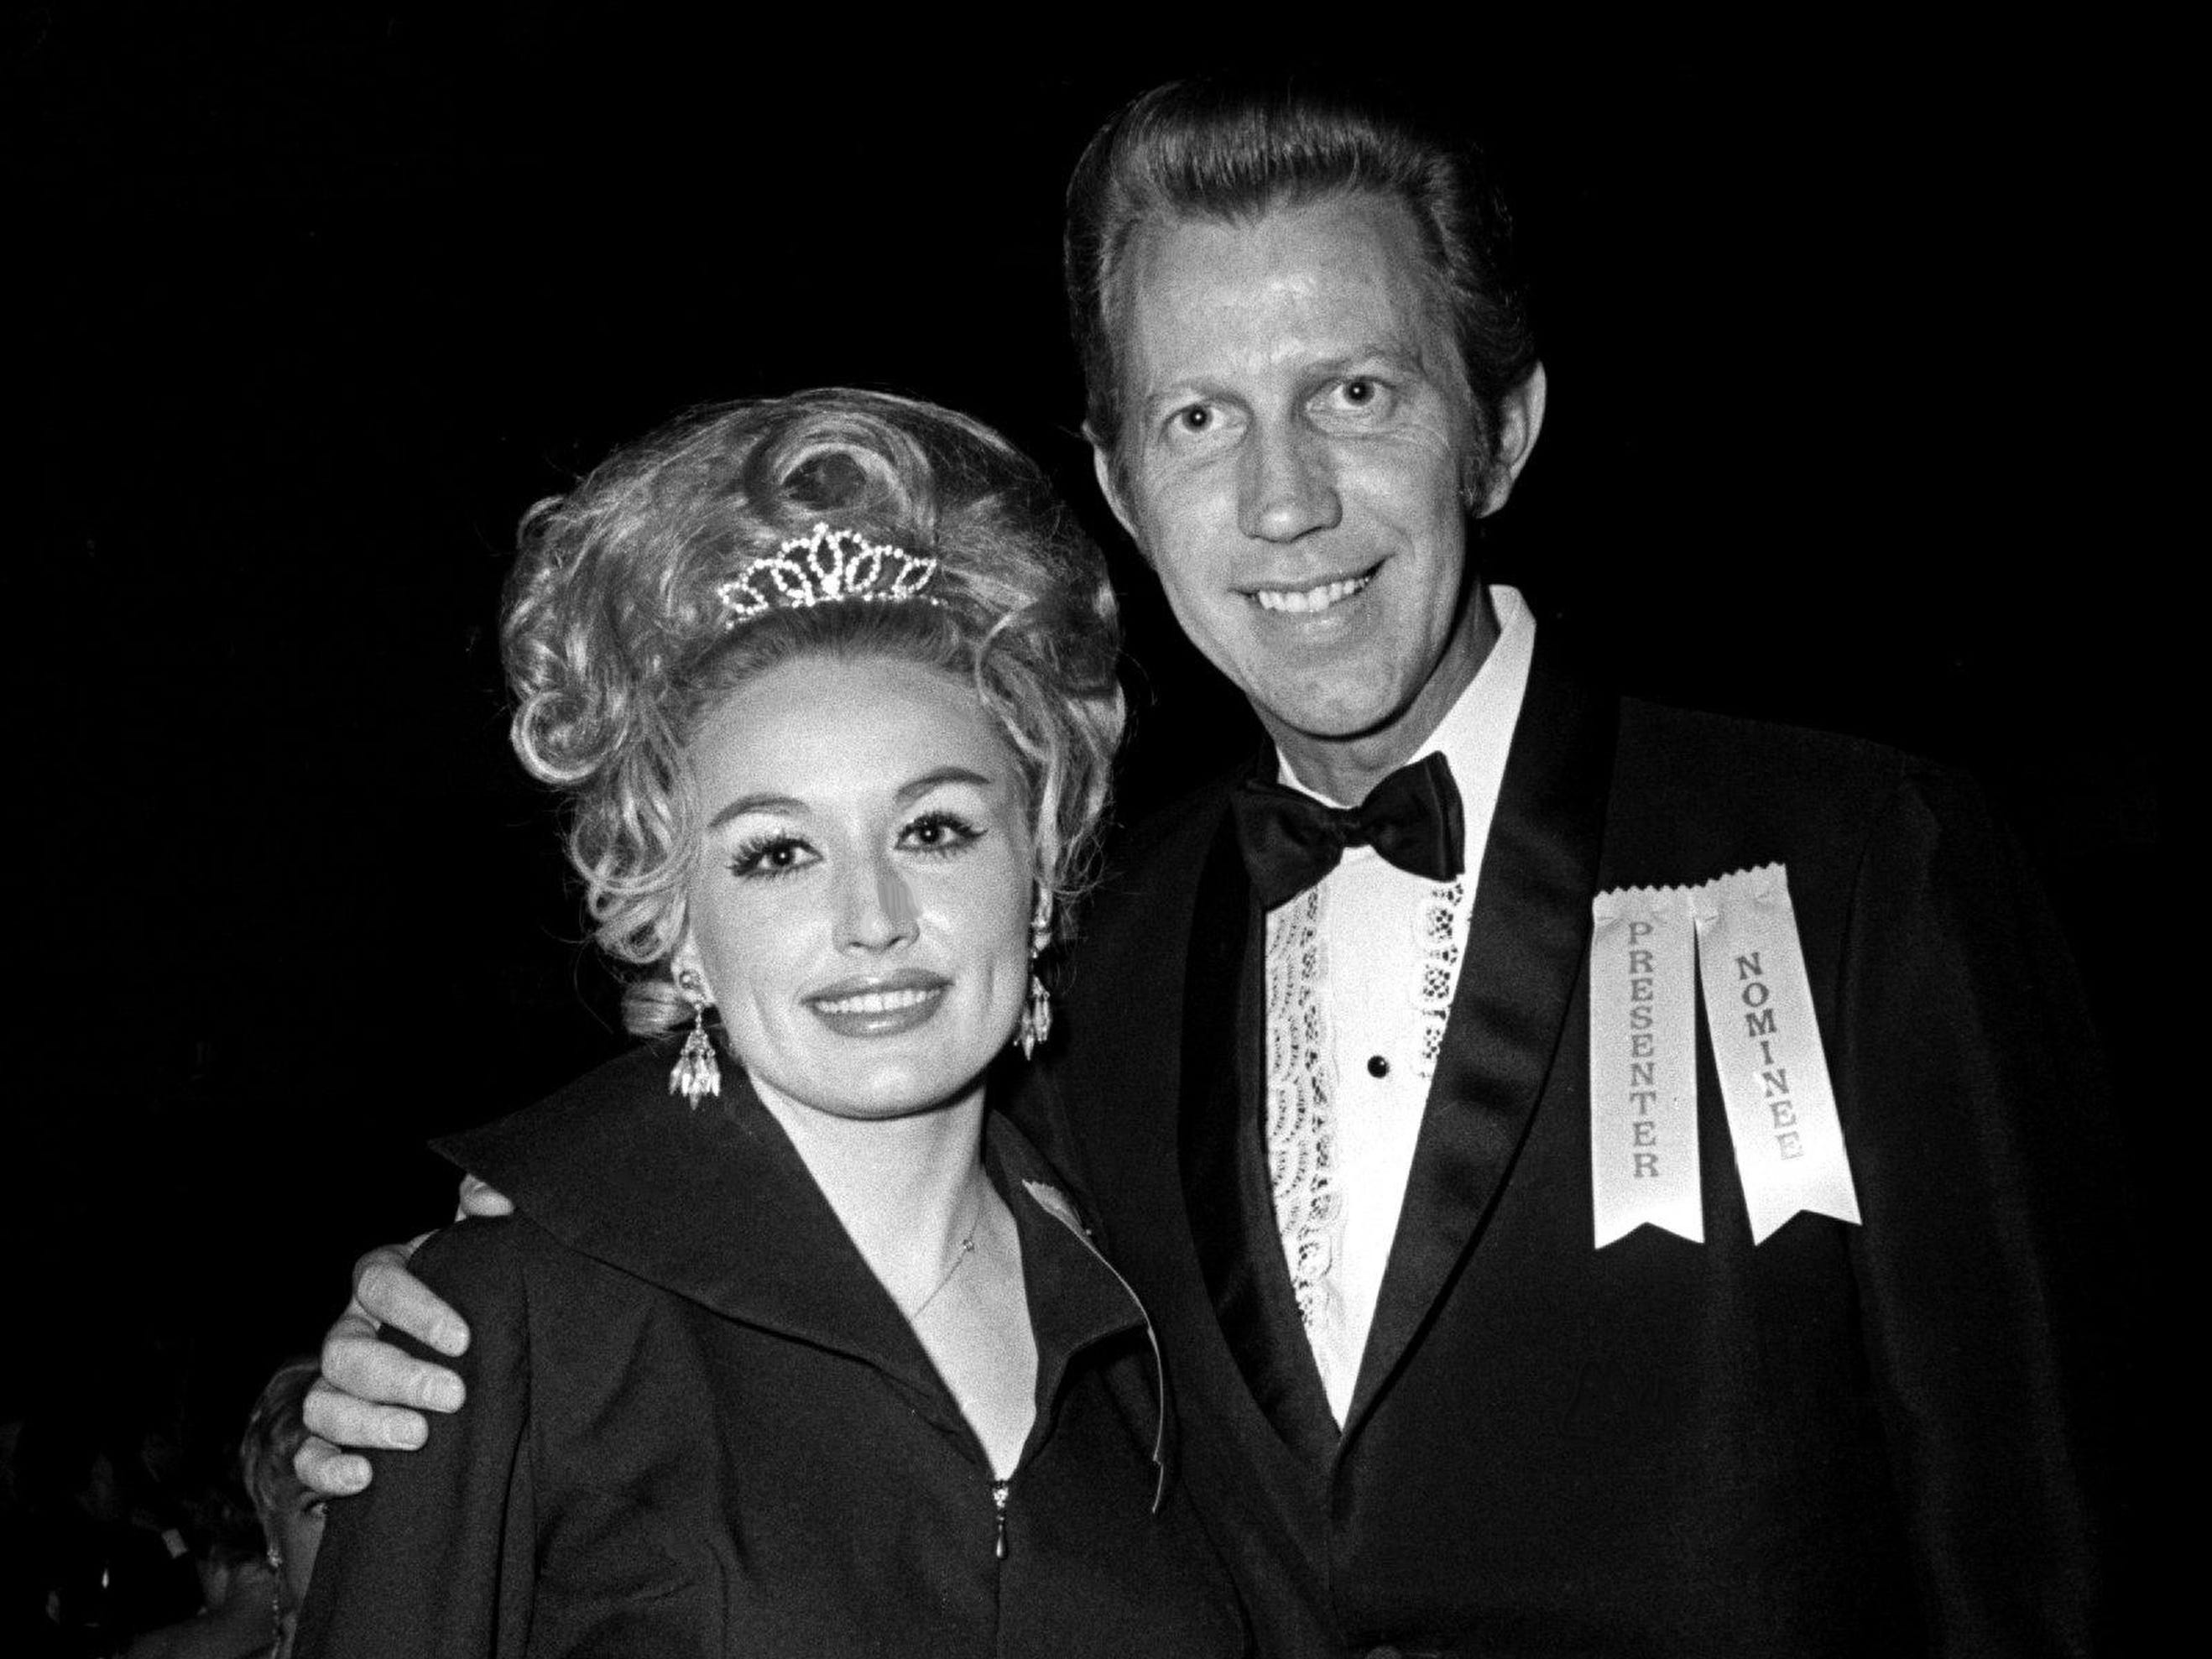 Presenters Dolly Parton, left, and Porter Wagoner, also a nominee, arrive for the Grammy Award show at the National Guard Armory in Nashville March 12, 1969.